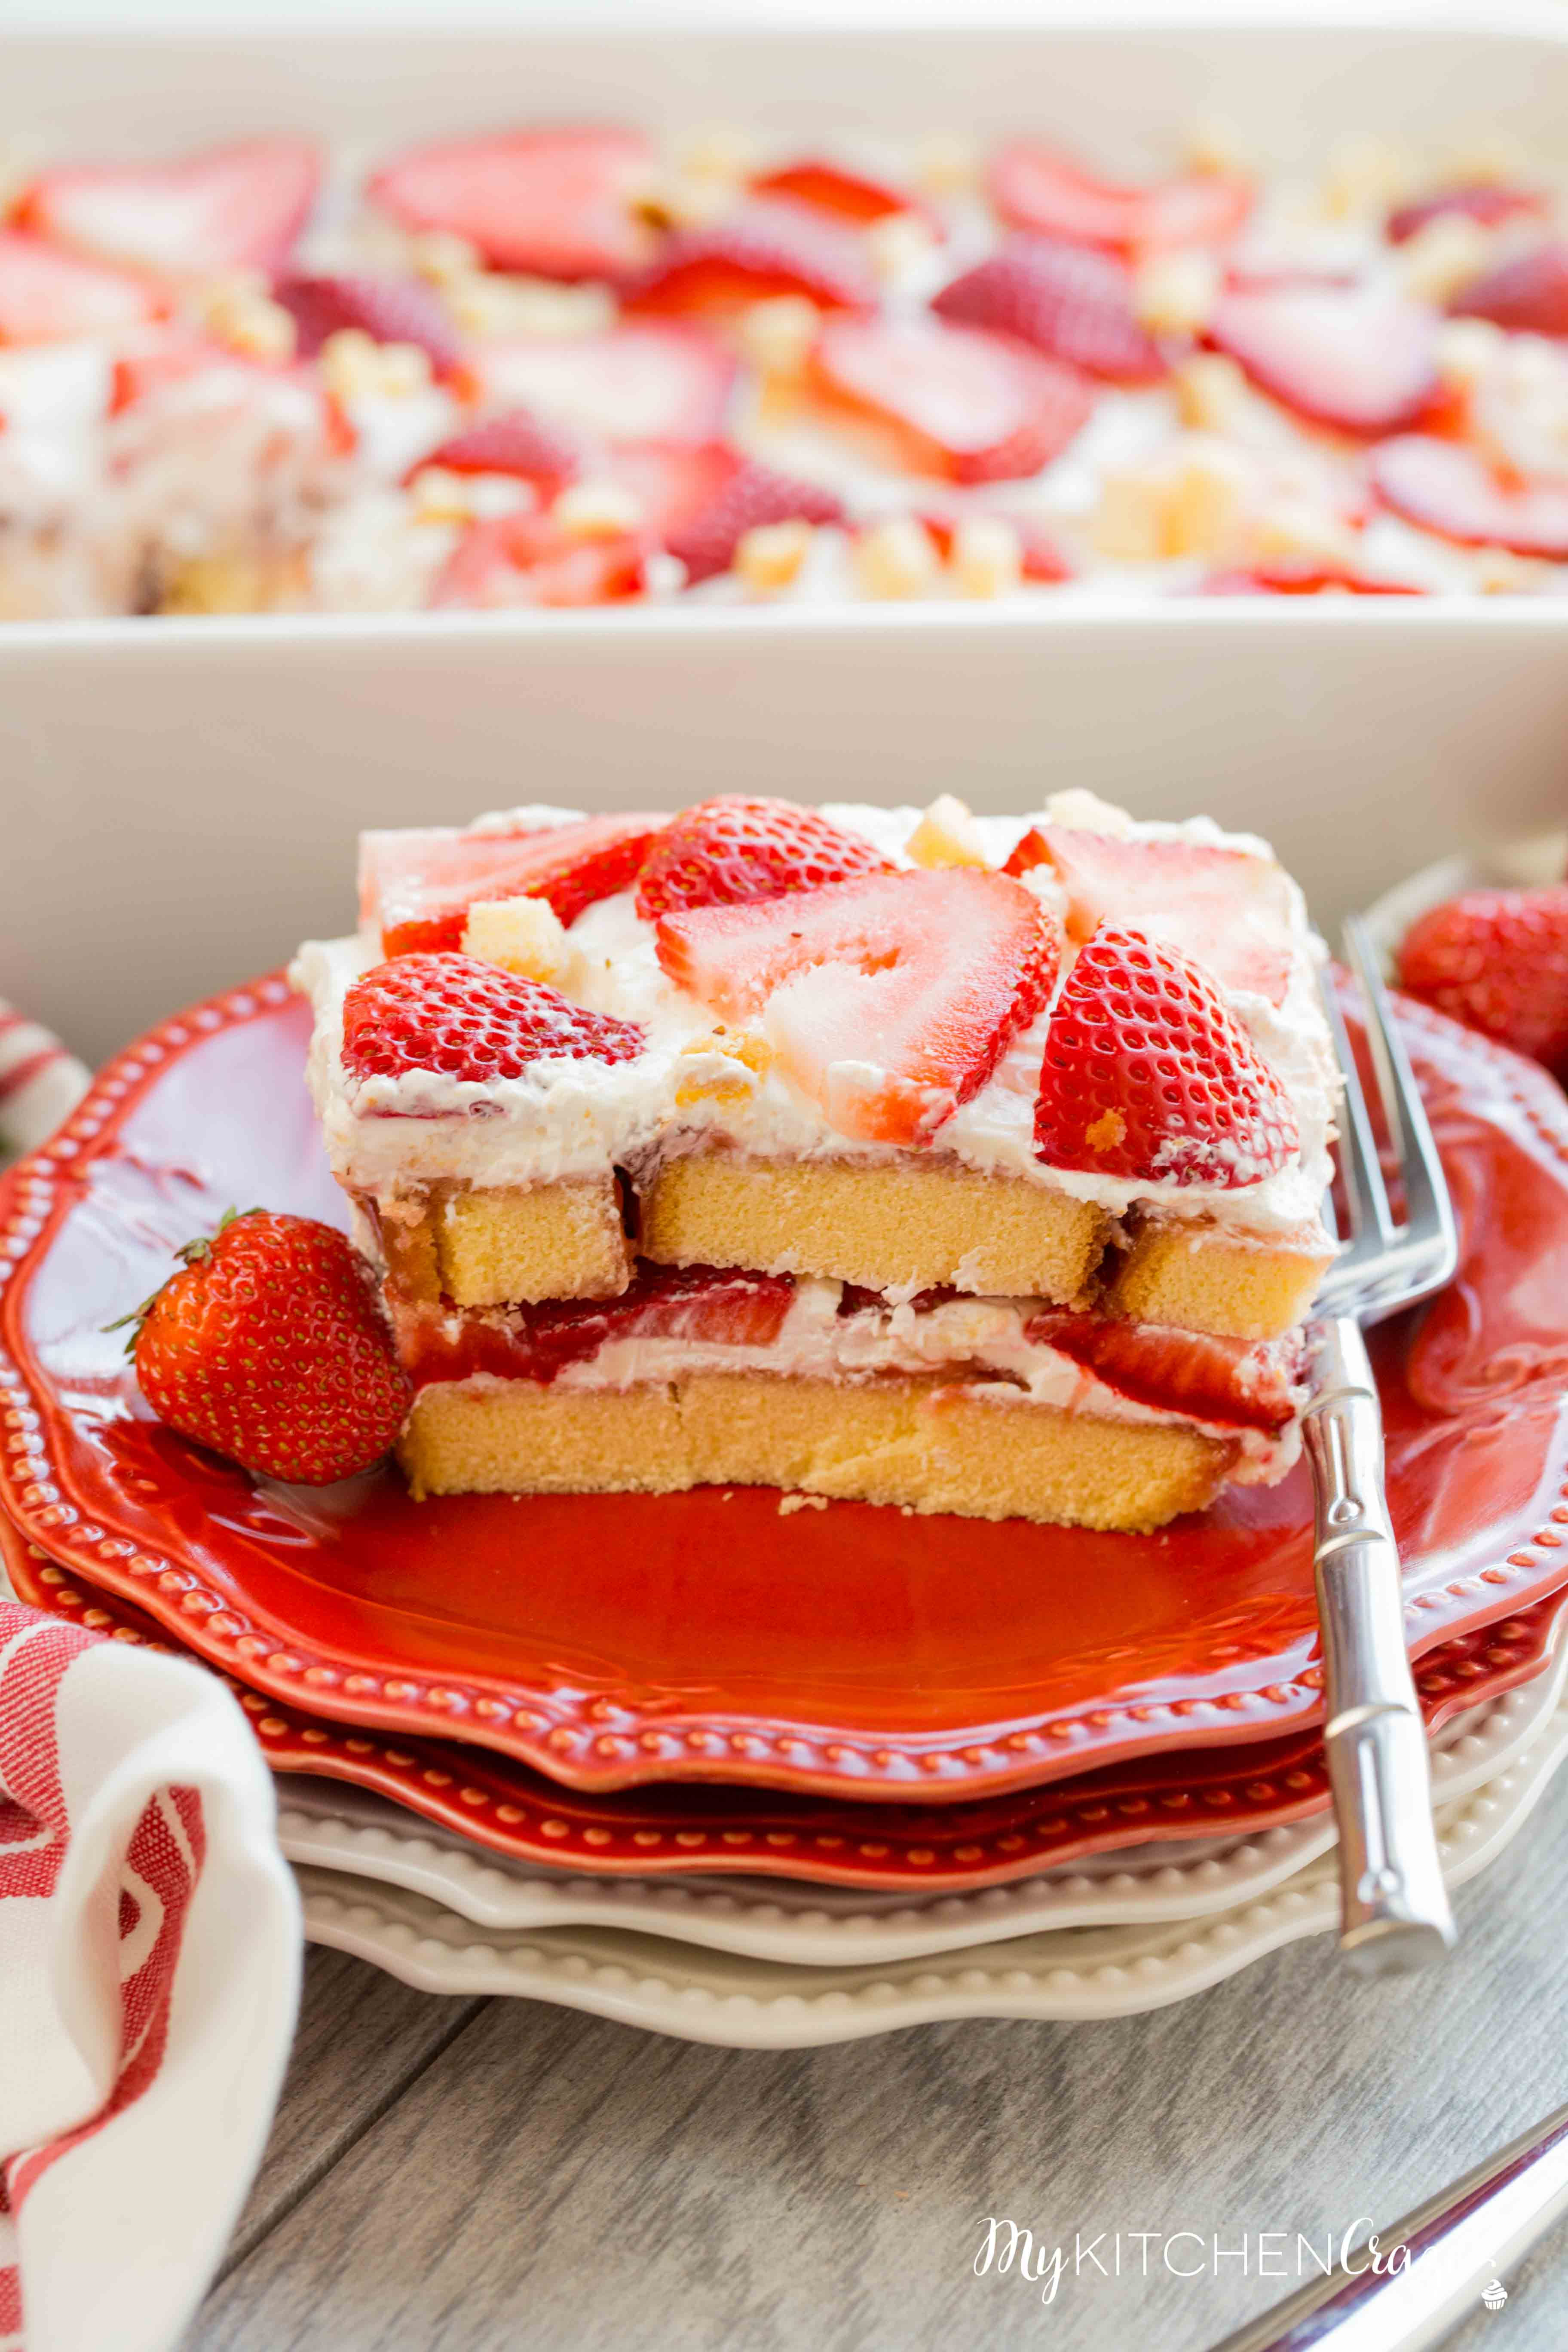 Strawberry Tiramisu ~ mykitchencraze.com ~ Enjoy this delicious and fun twist on tiramisu! Loaded with strawberries, pound cake, mascarpone cheese and cool whip. This is one dessert you won't be able to pass up!